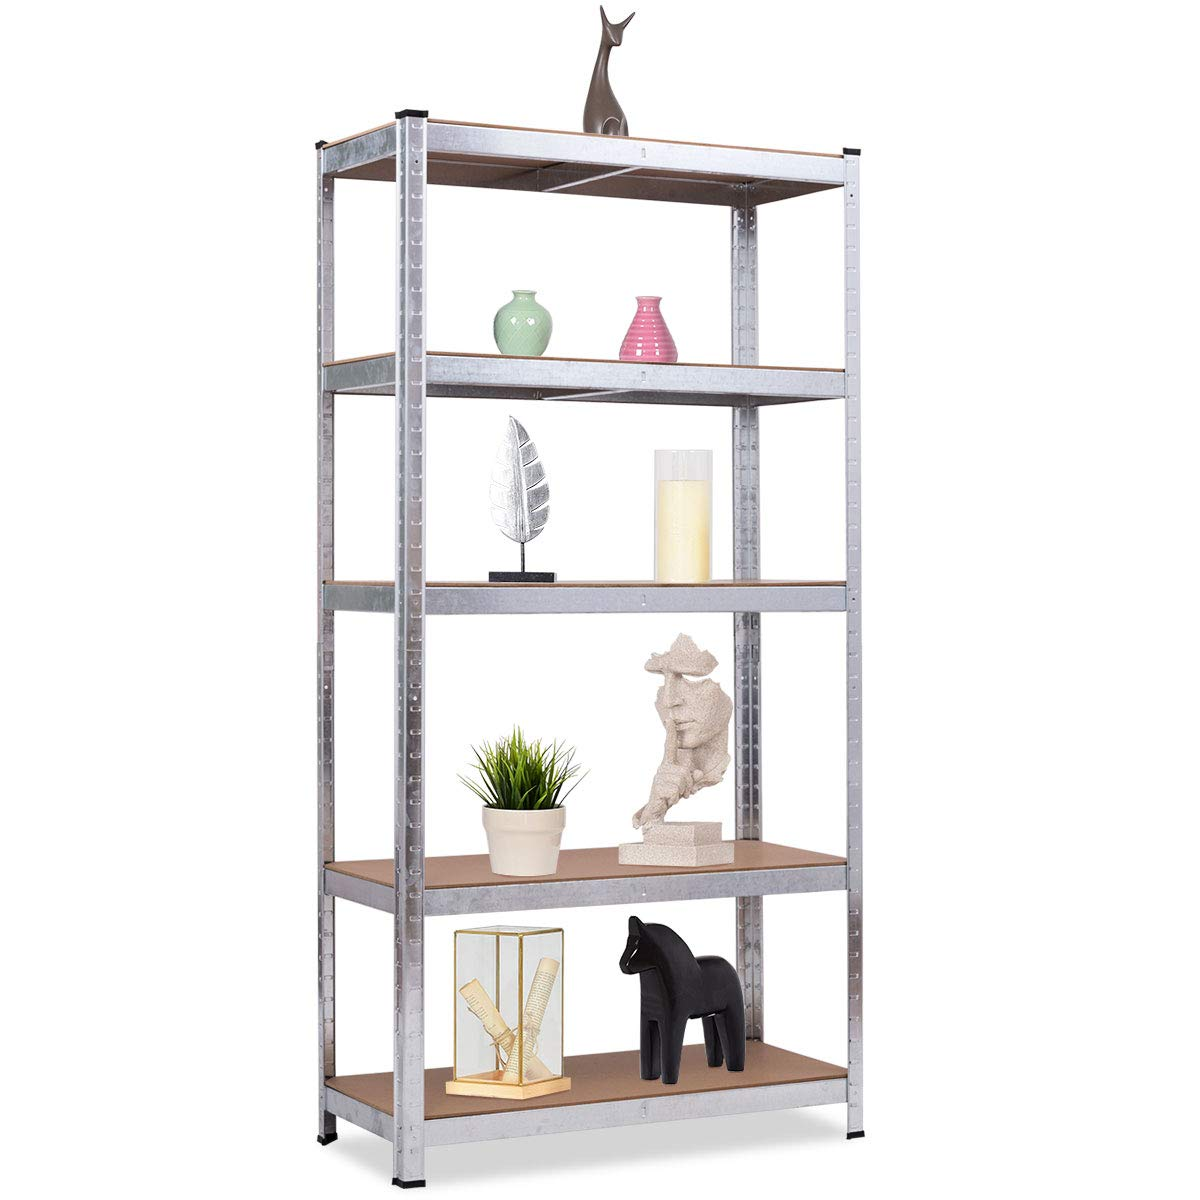 Giantex Shelving Rack Storage Shelf Steel Garage Utility Rack 5-Shelf Adjustable Shelves Heavy Duty Display Stand for Books, Clothes, Kitchenware, Tools Bolt-Free Assembly 36''x 16''x 72'' (1) by Giantex